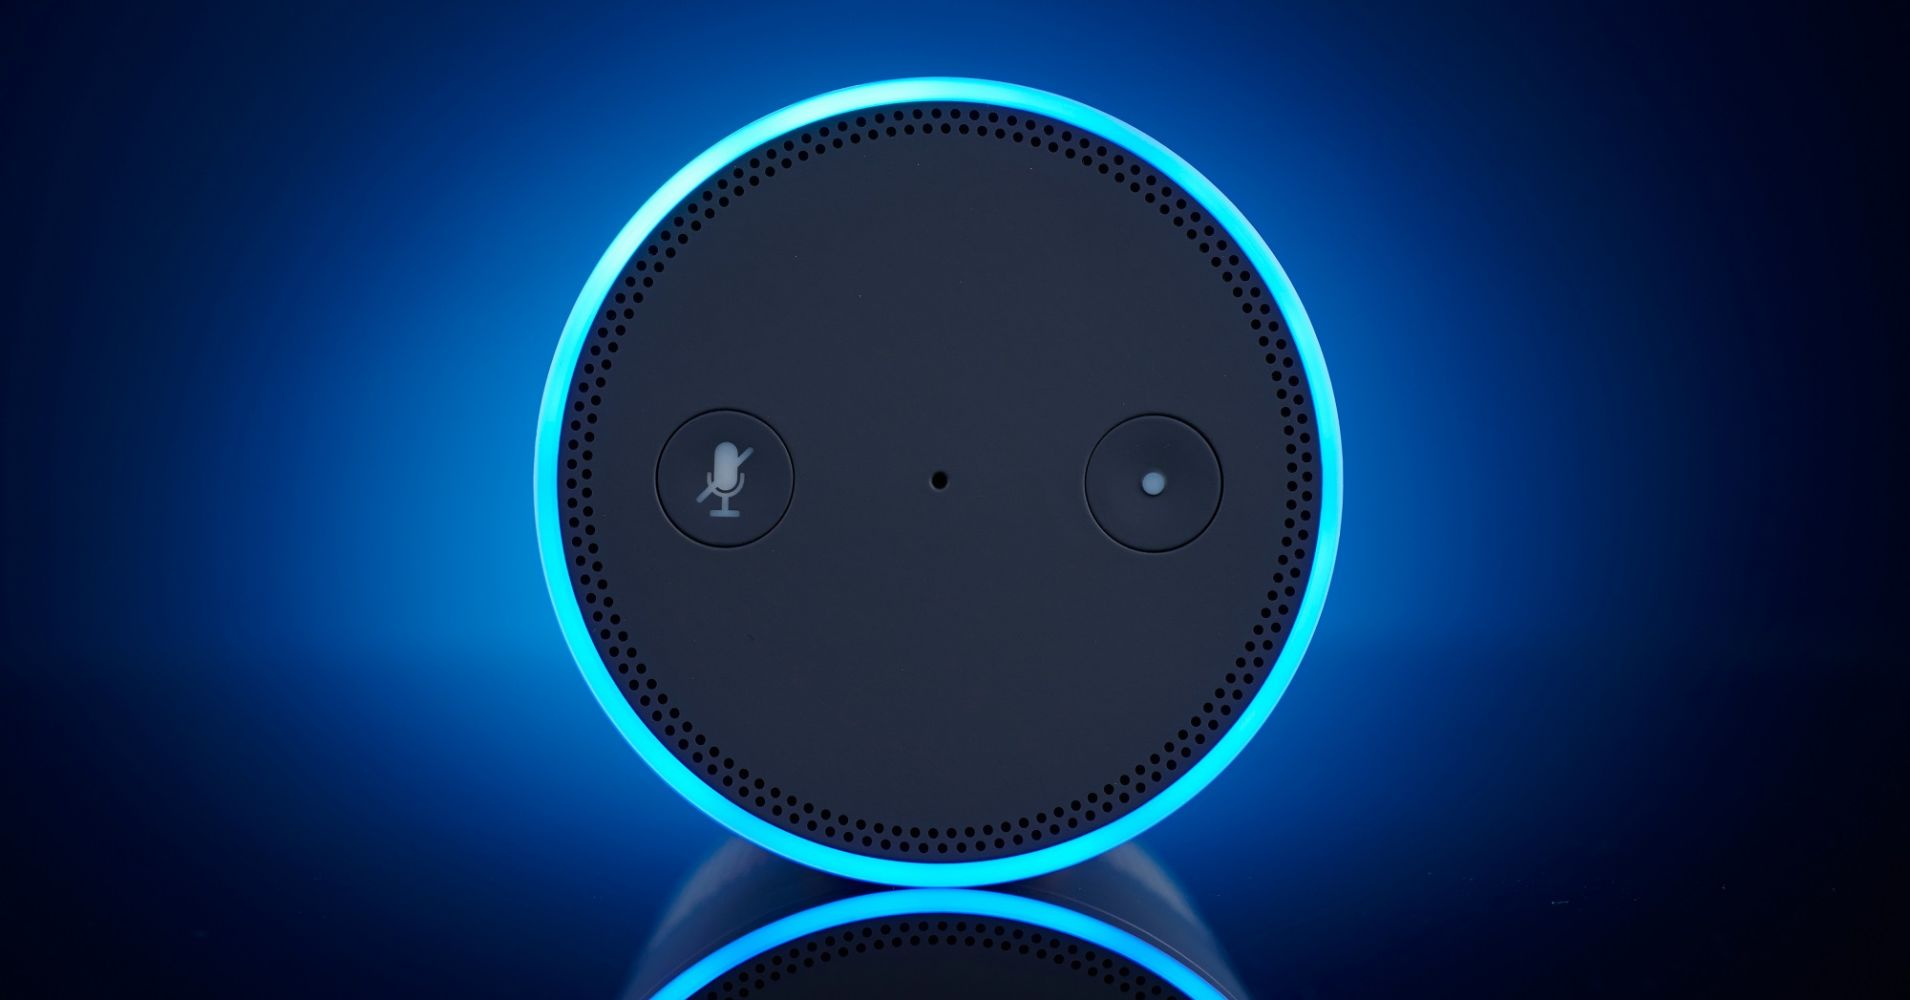 Virtual Assistant Smart Speaker Control Smart Devices